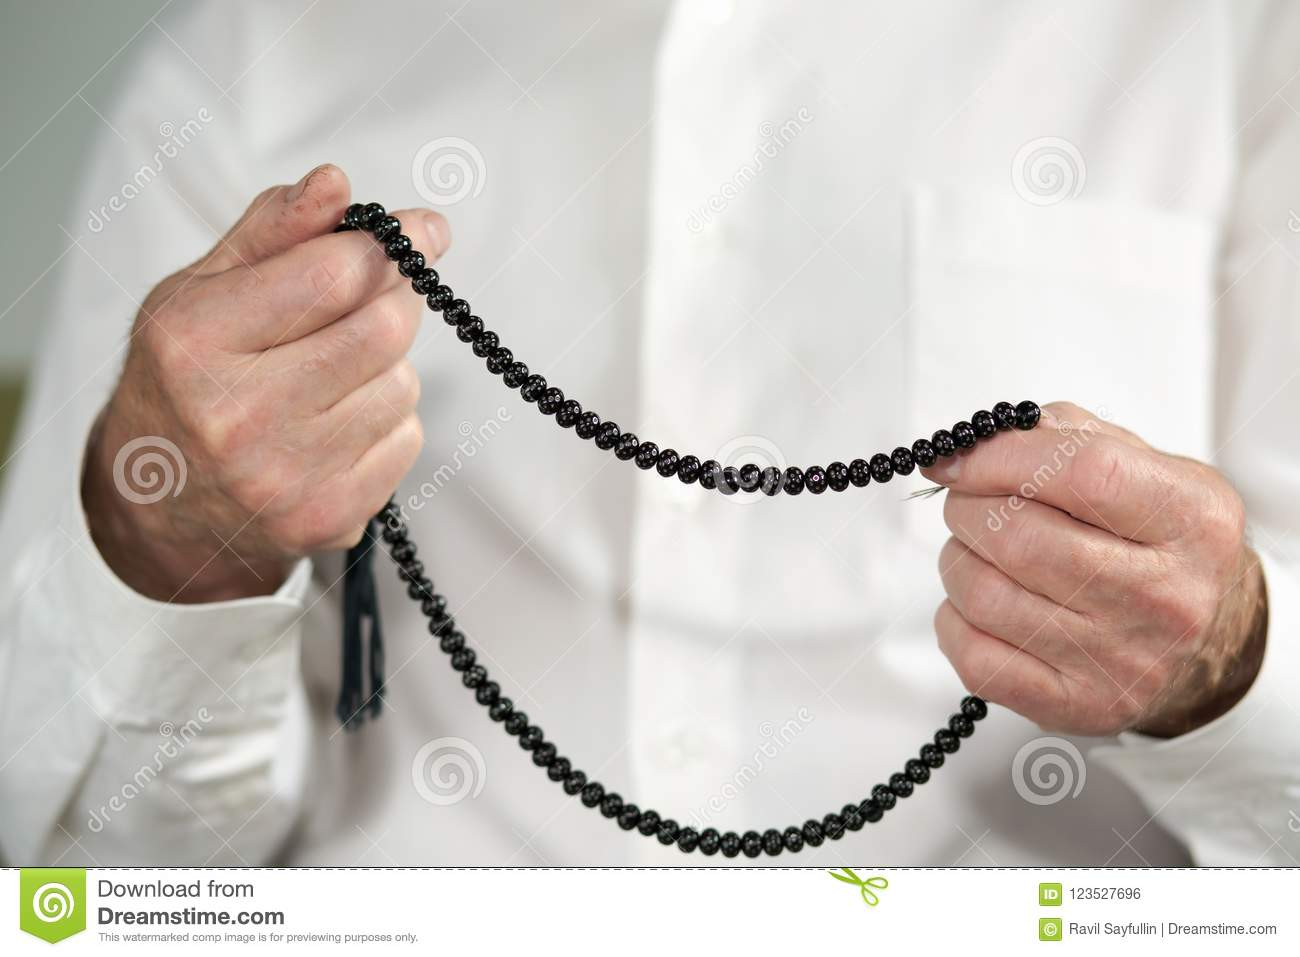 Praying Hands Of An Old Man With Rosary Beads Stock Photo Image Of